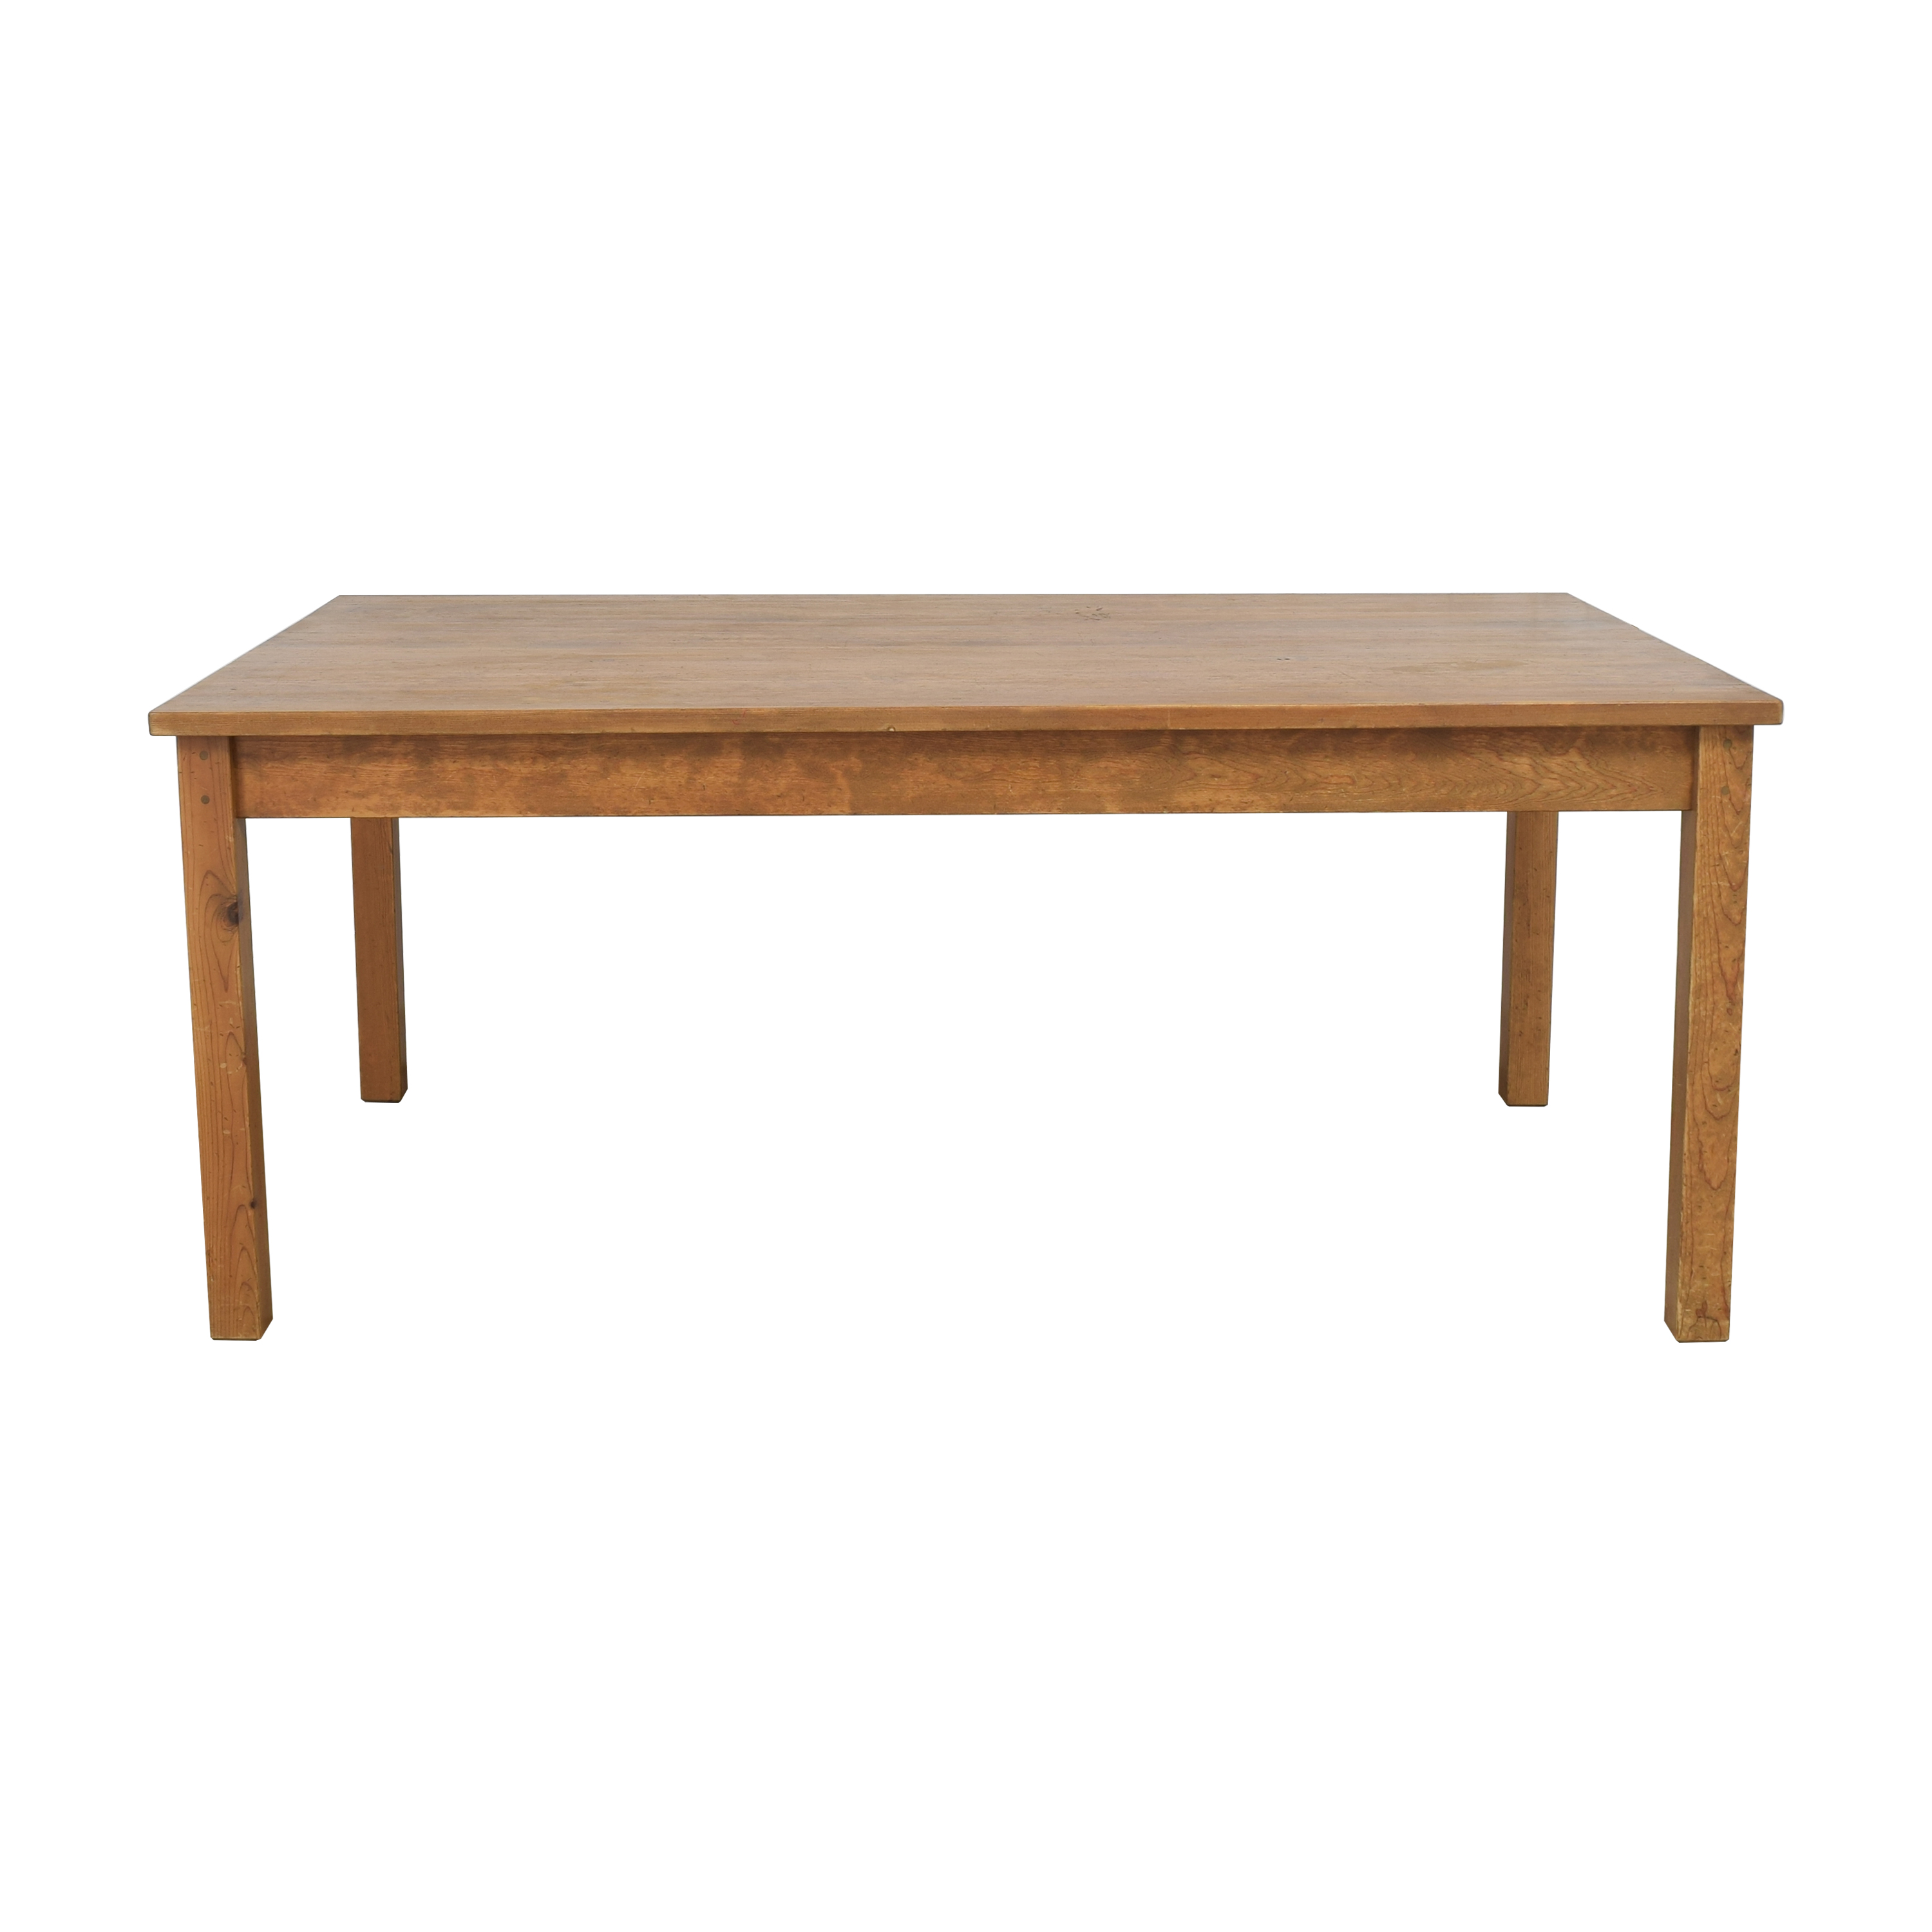 Taos Furniture Country Dining Table sale